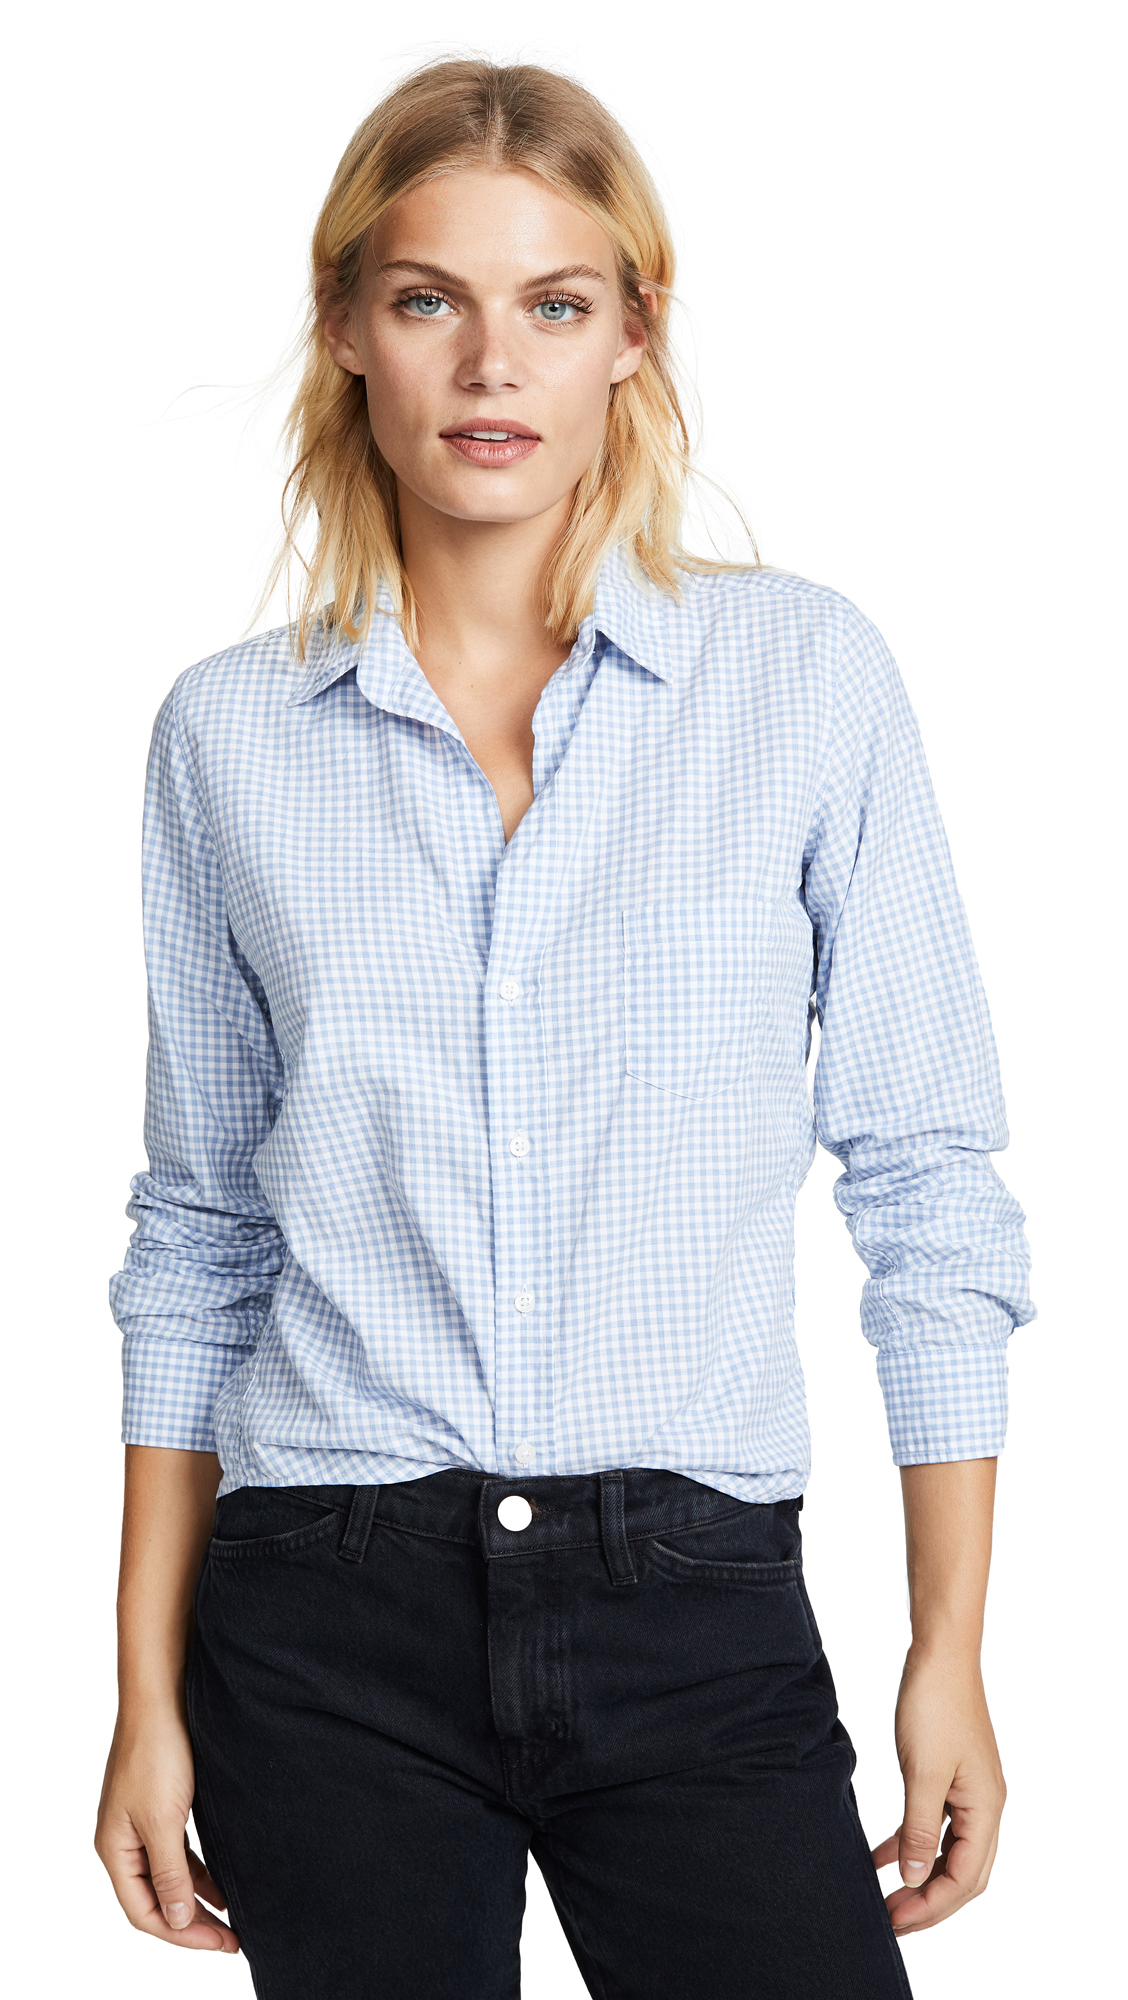 FRANK & EILEEN Barry Button Down Shirt in Mini Blue Check